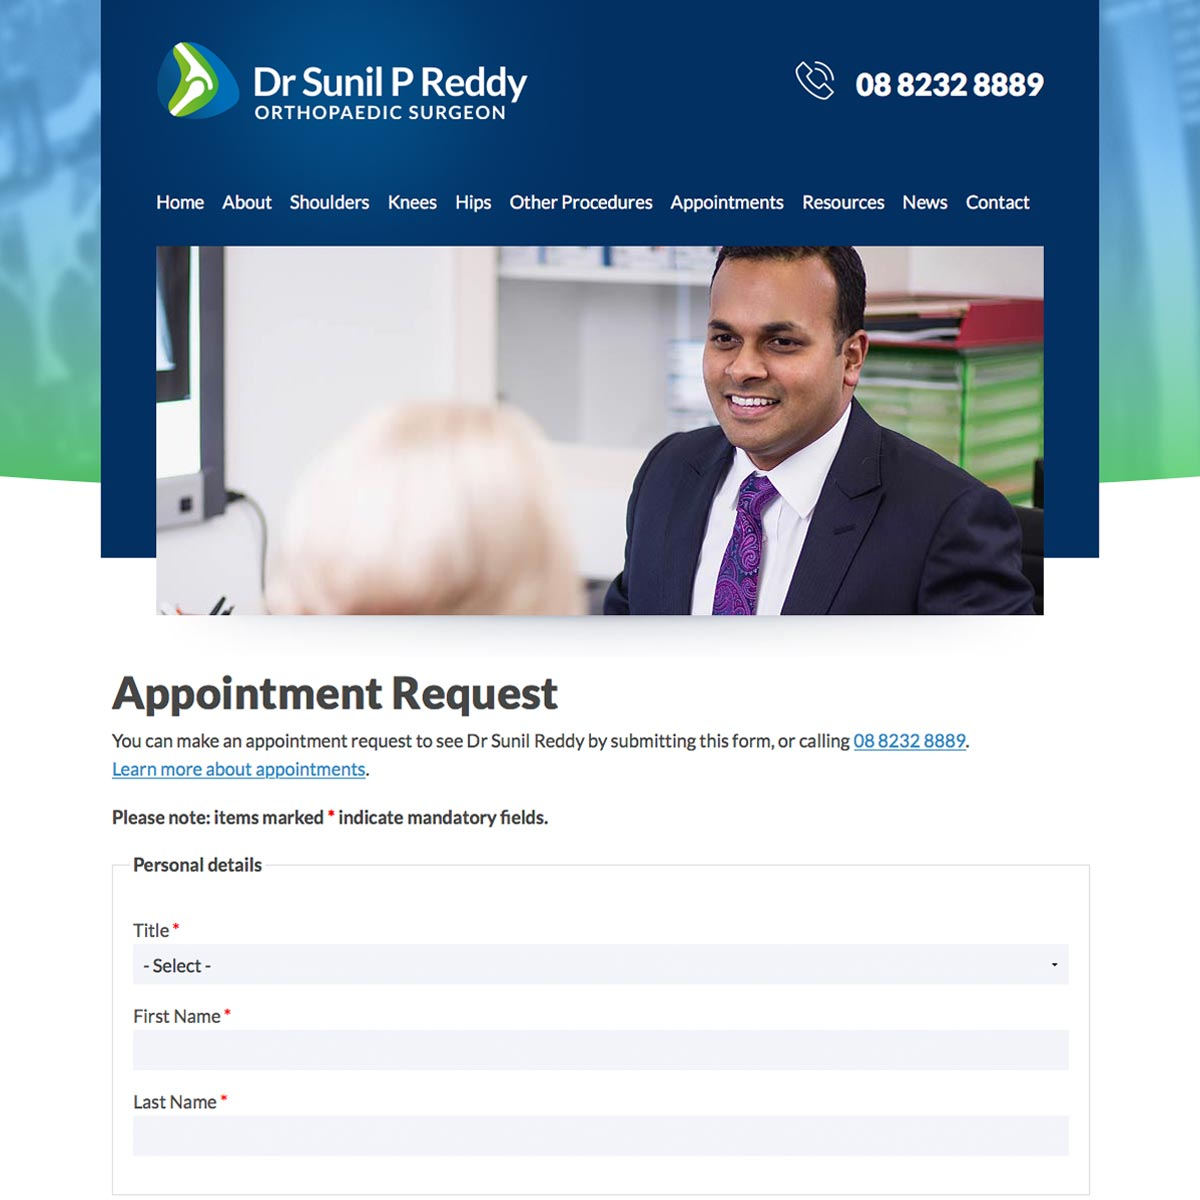 Dr Sunil Reddy - Appointment Request